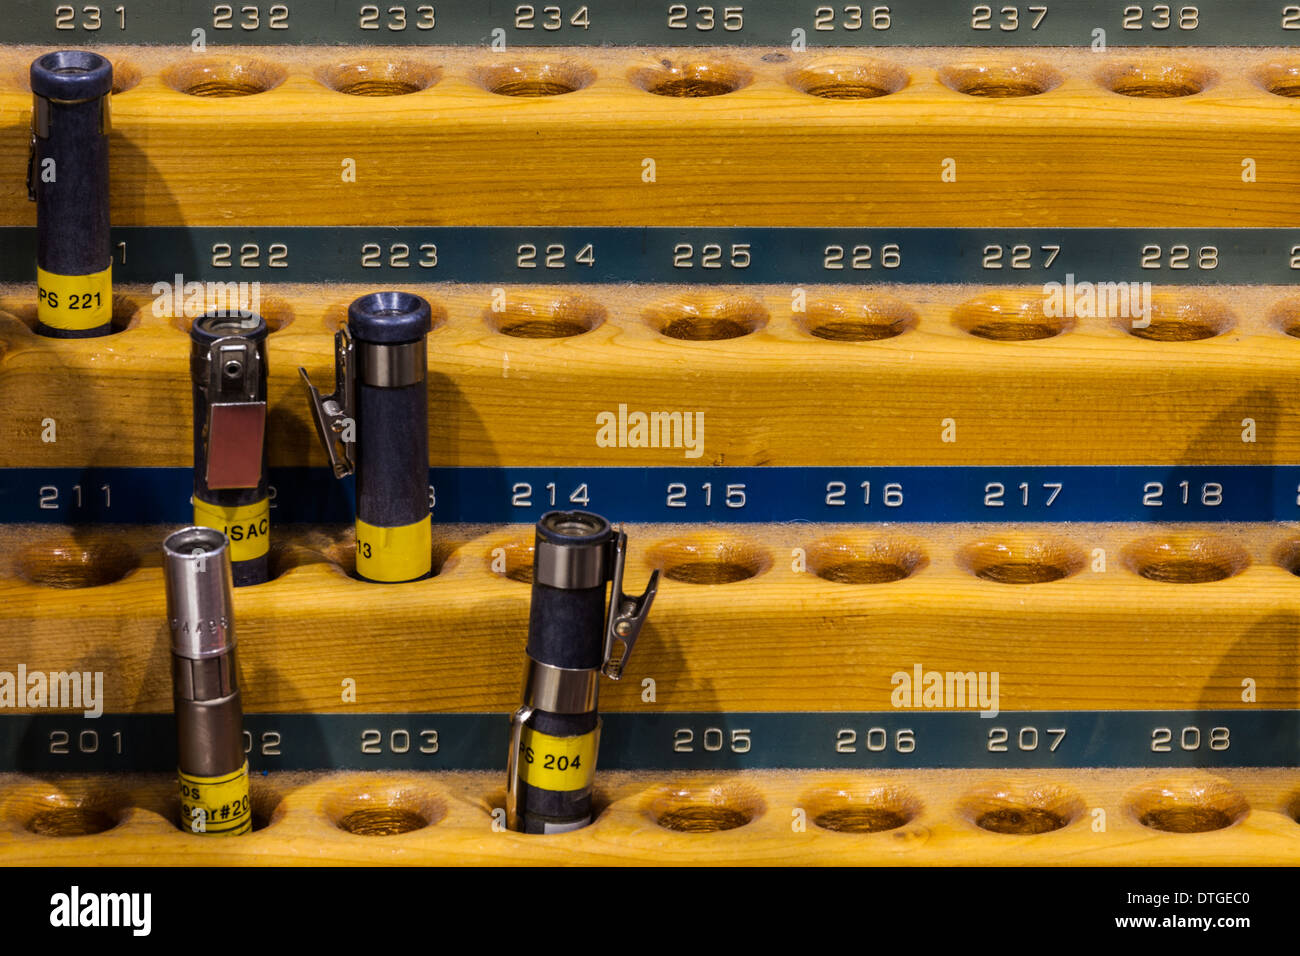 Pencil style radiation dosimeters in a wooden rack - Stock Image